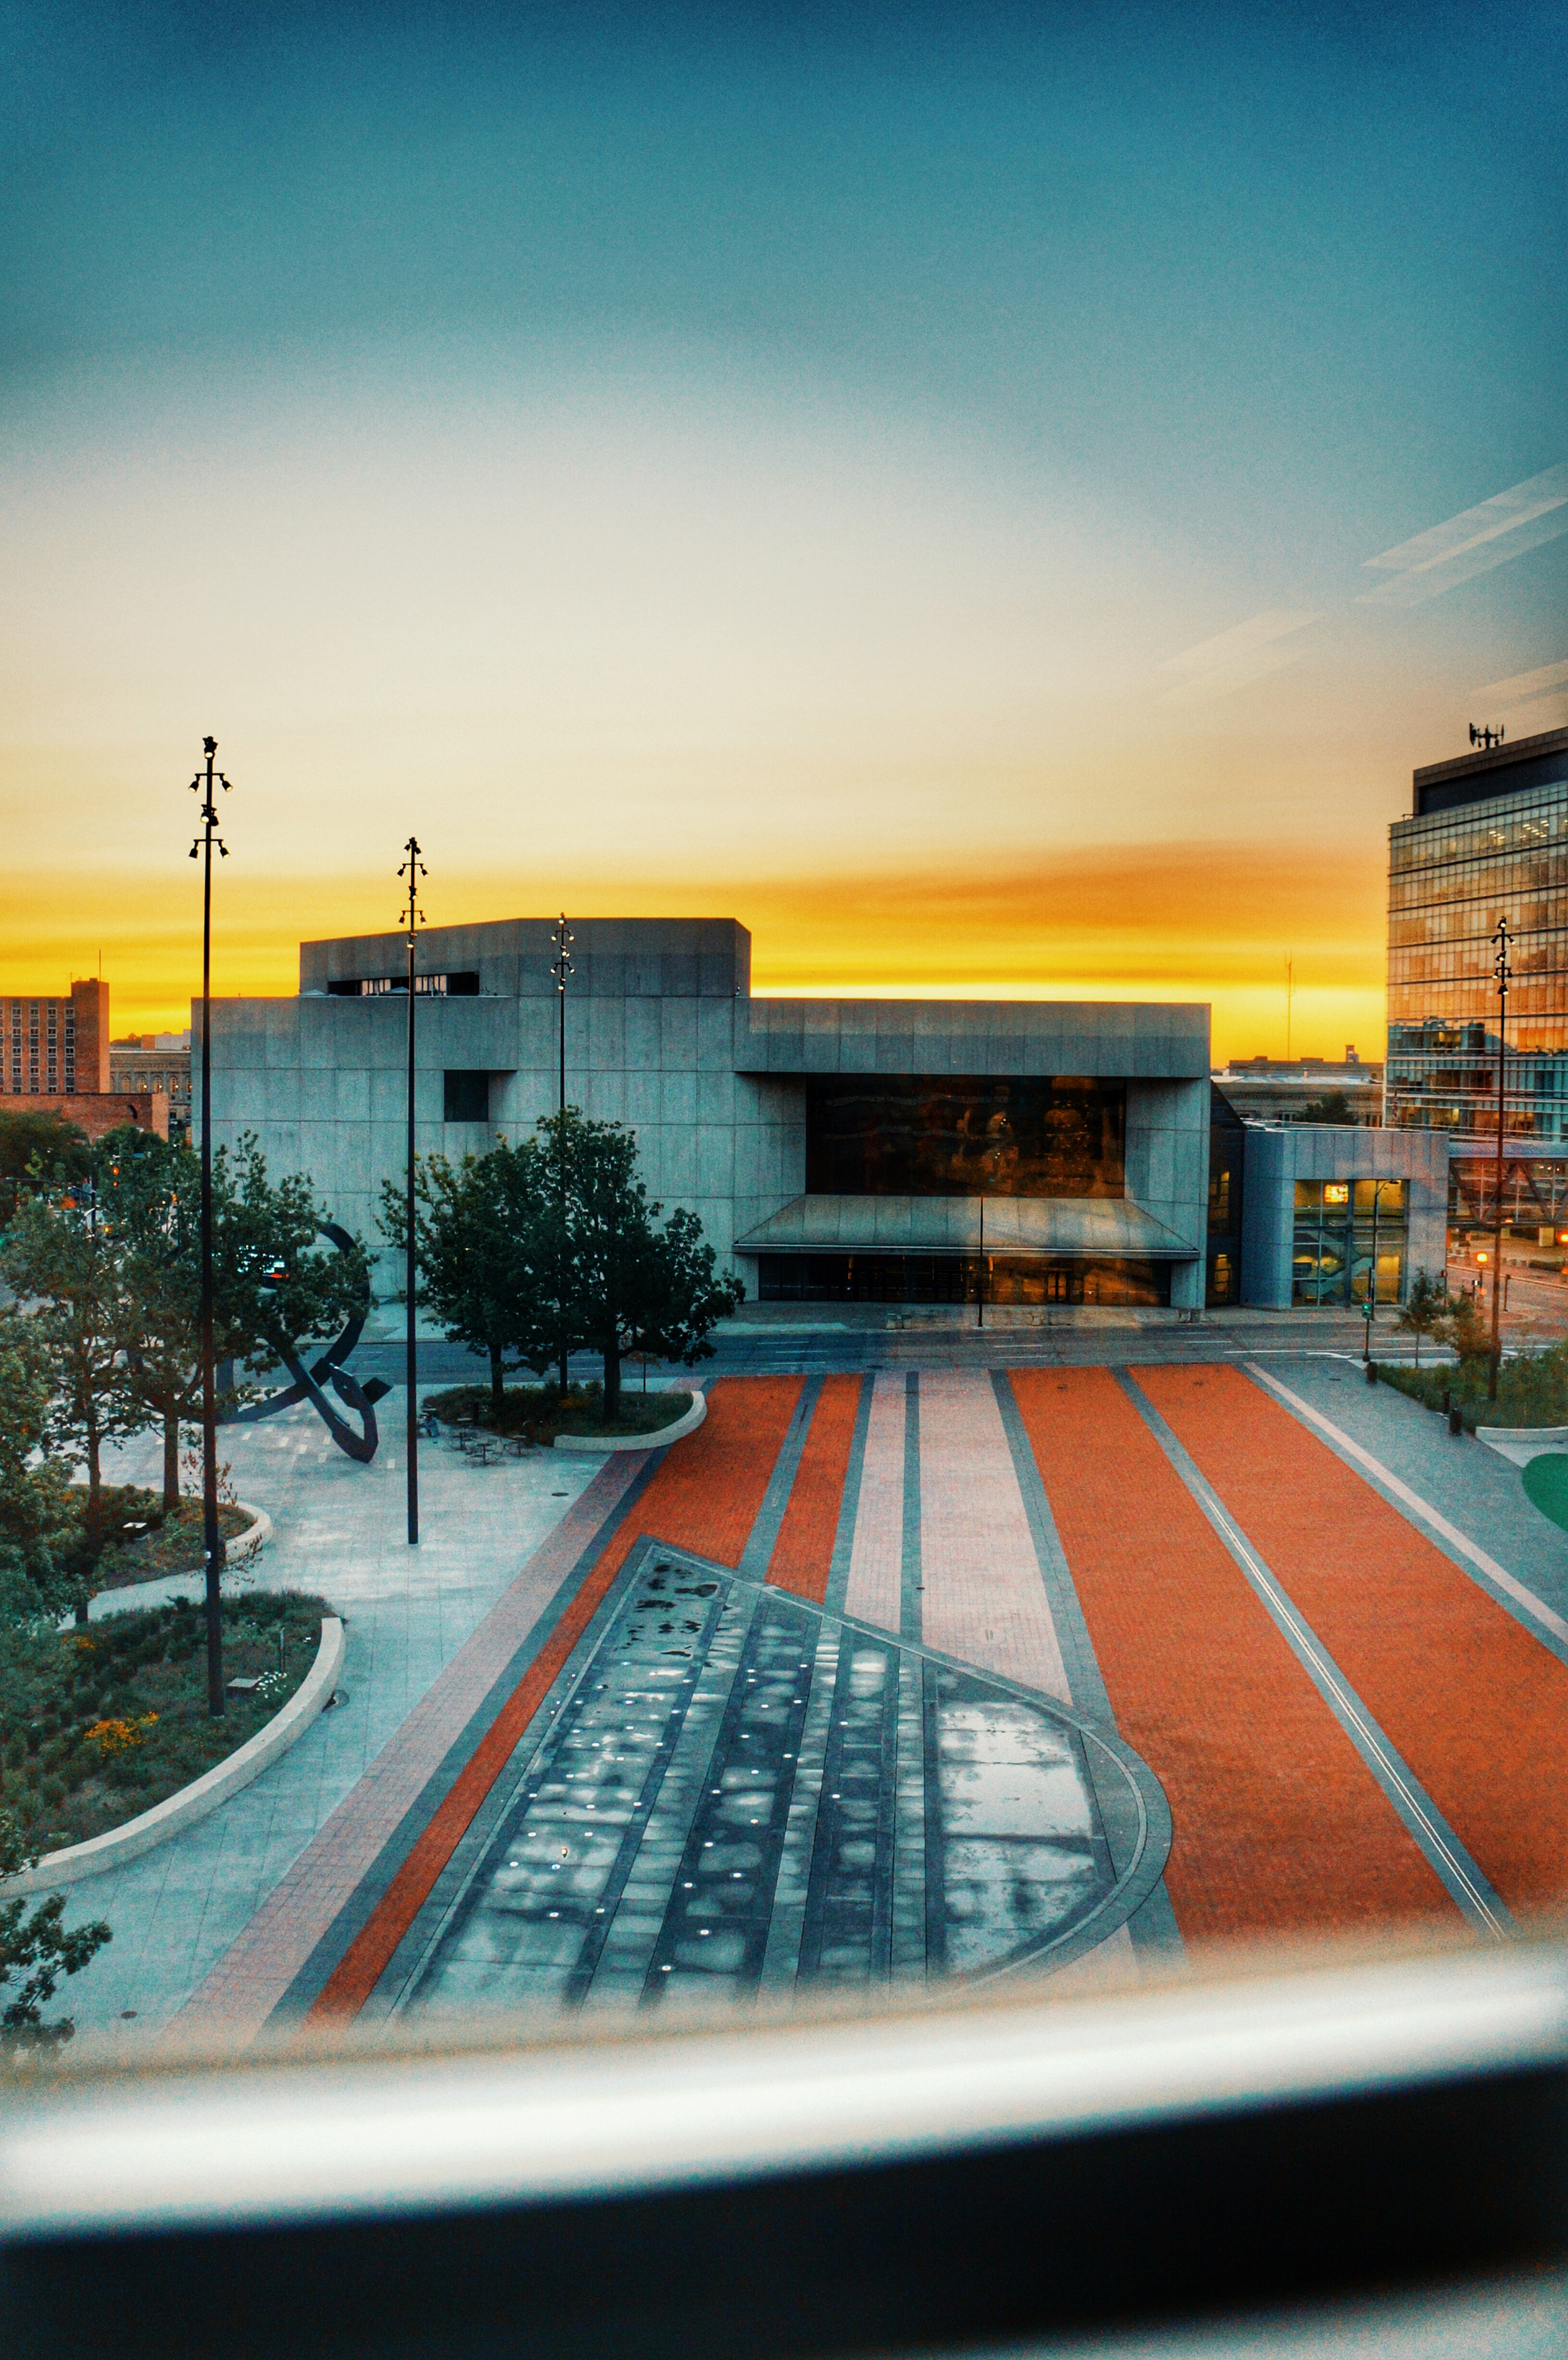 The Red Carpet of Cowles Commons